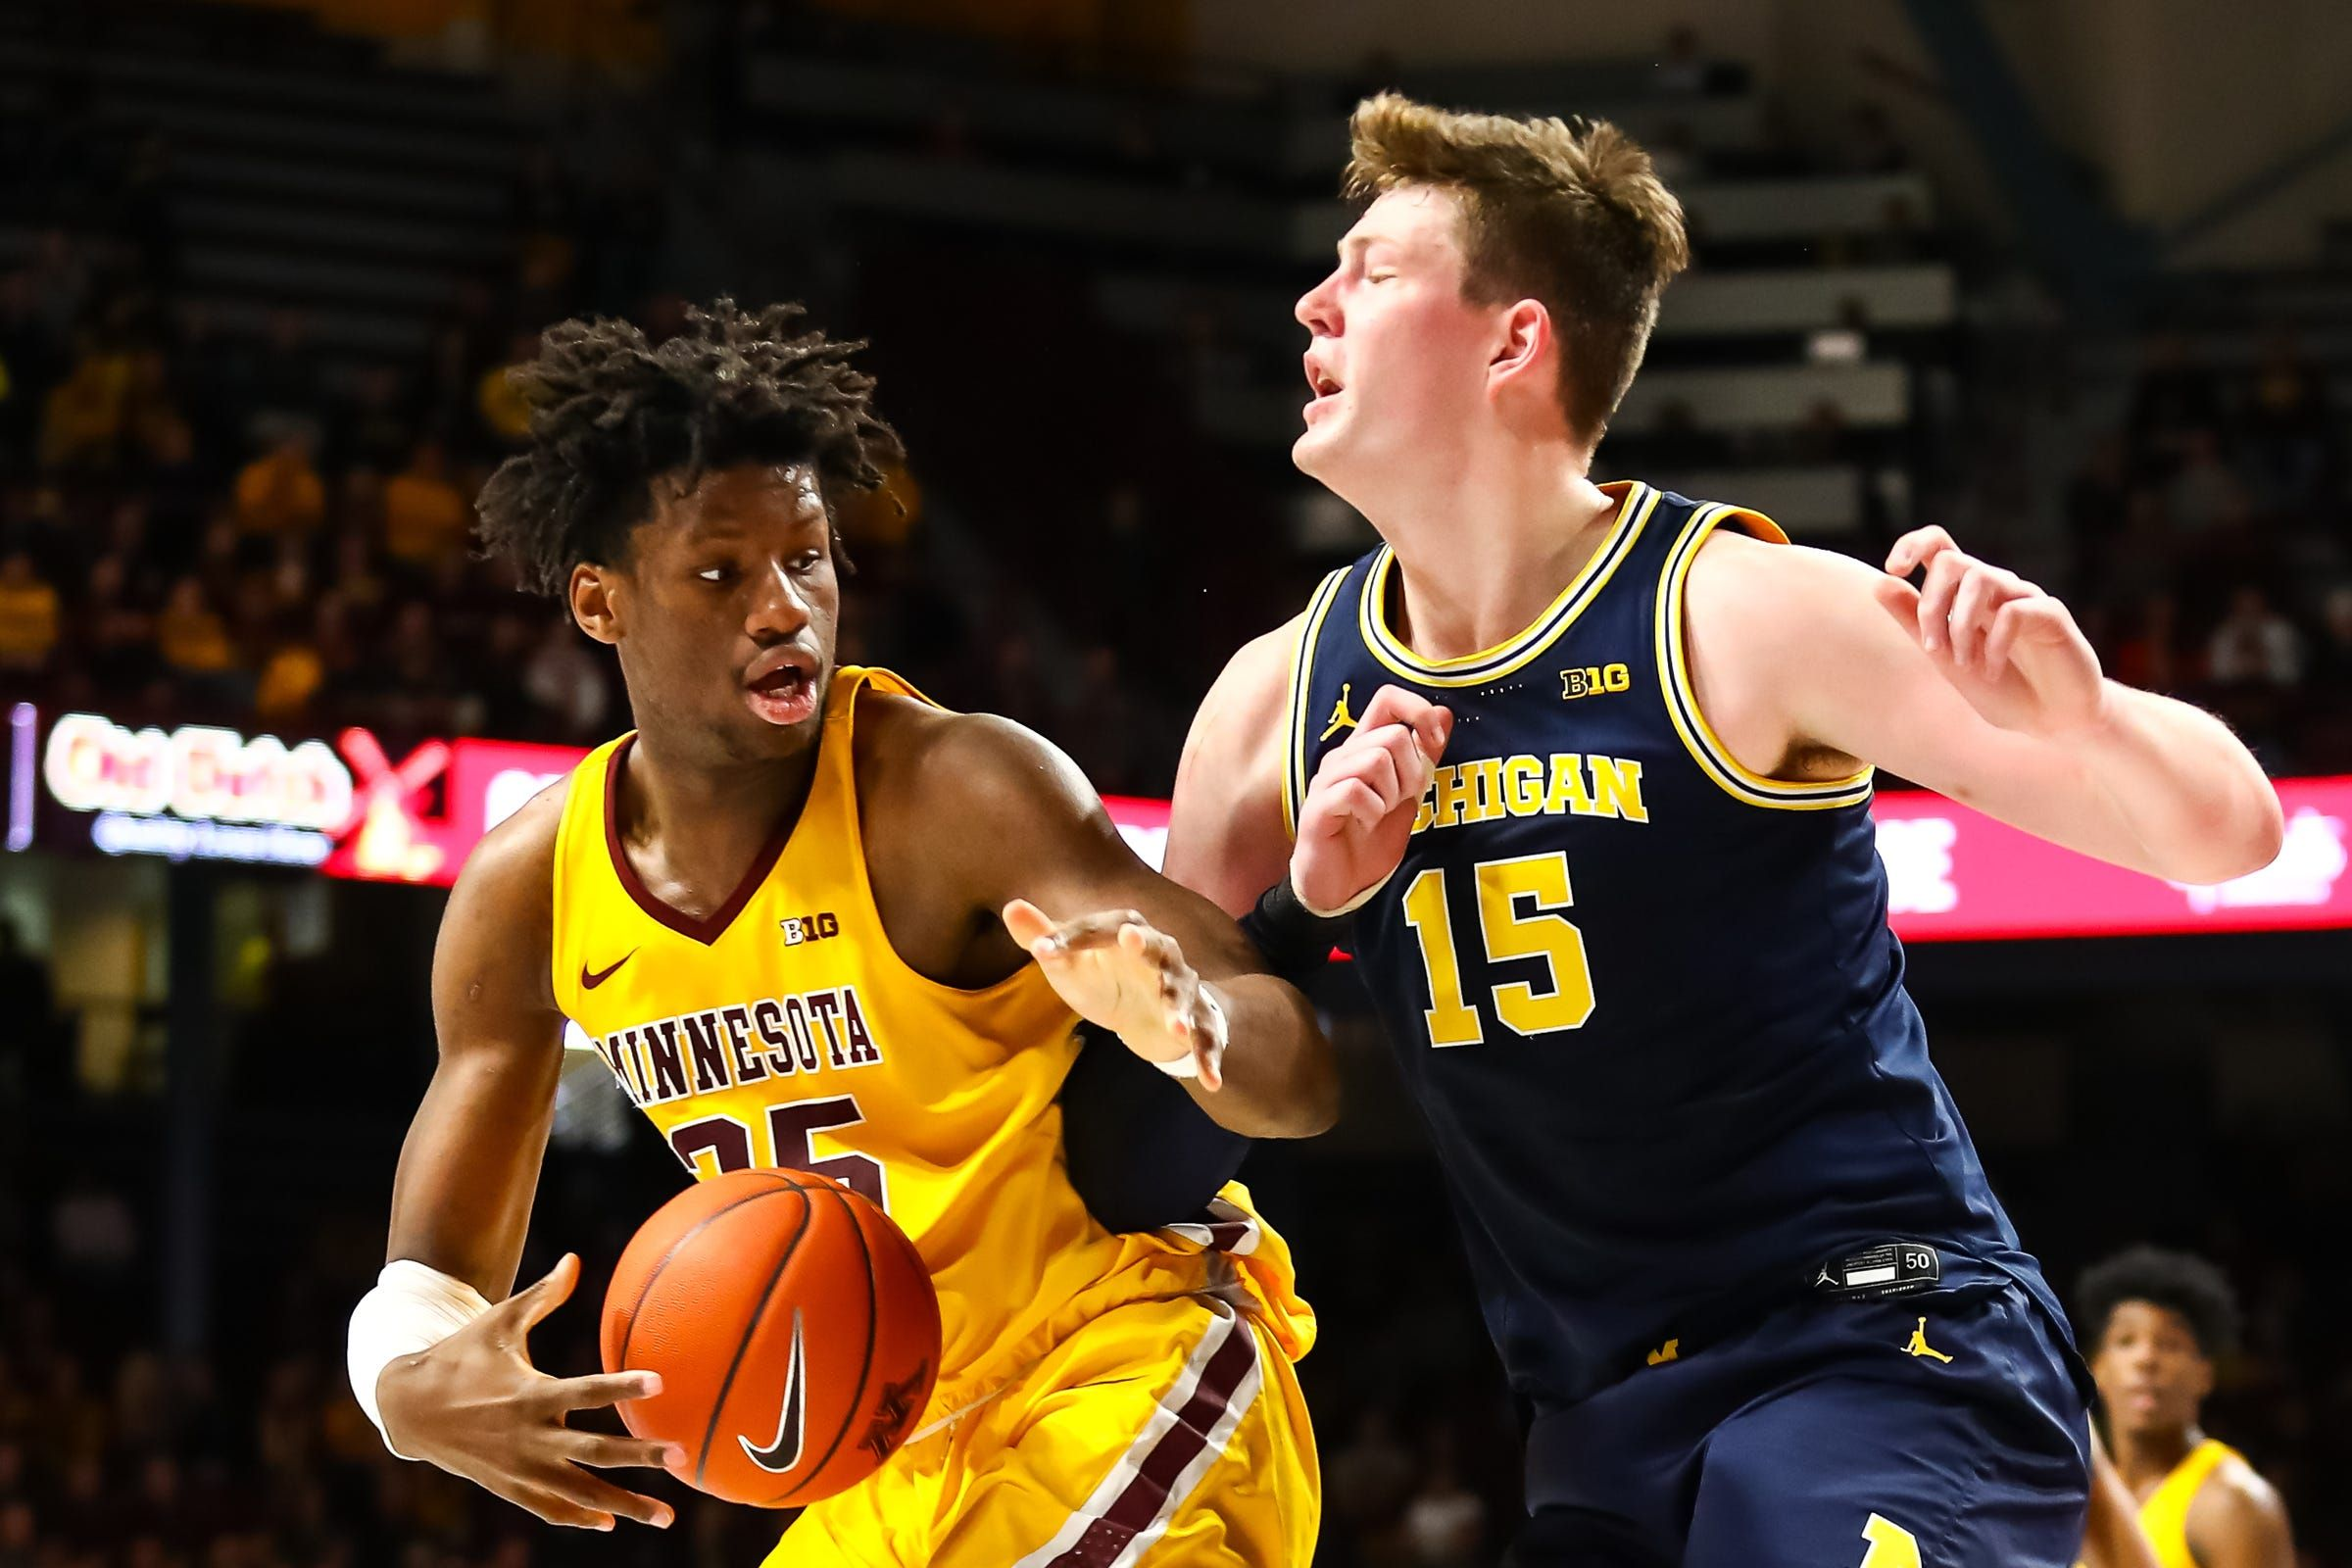 Here S Why Michigan Basketball Is Struggling To Defend Big Men In 2020 Michigan Sports Big Men Michigan